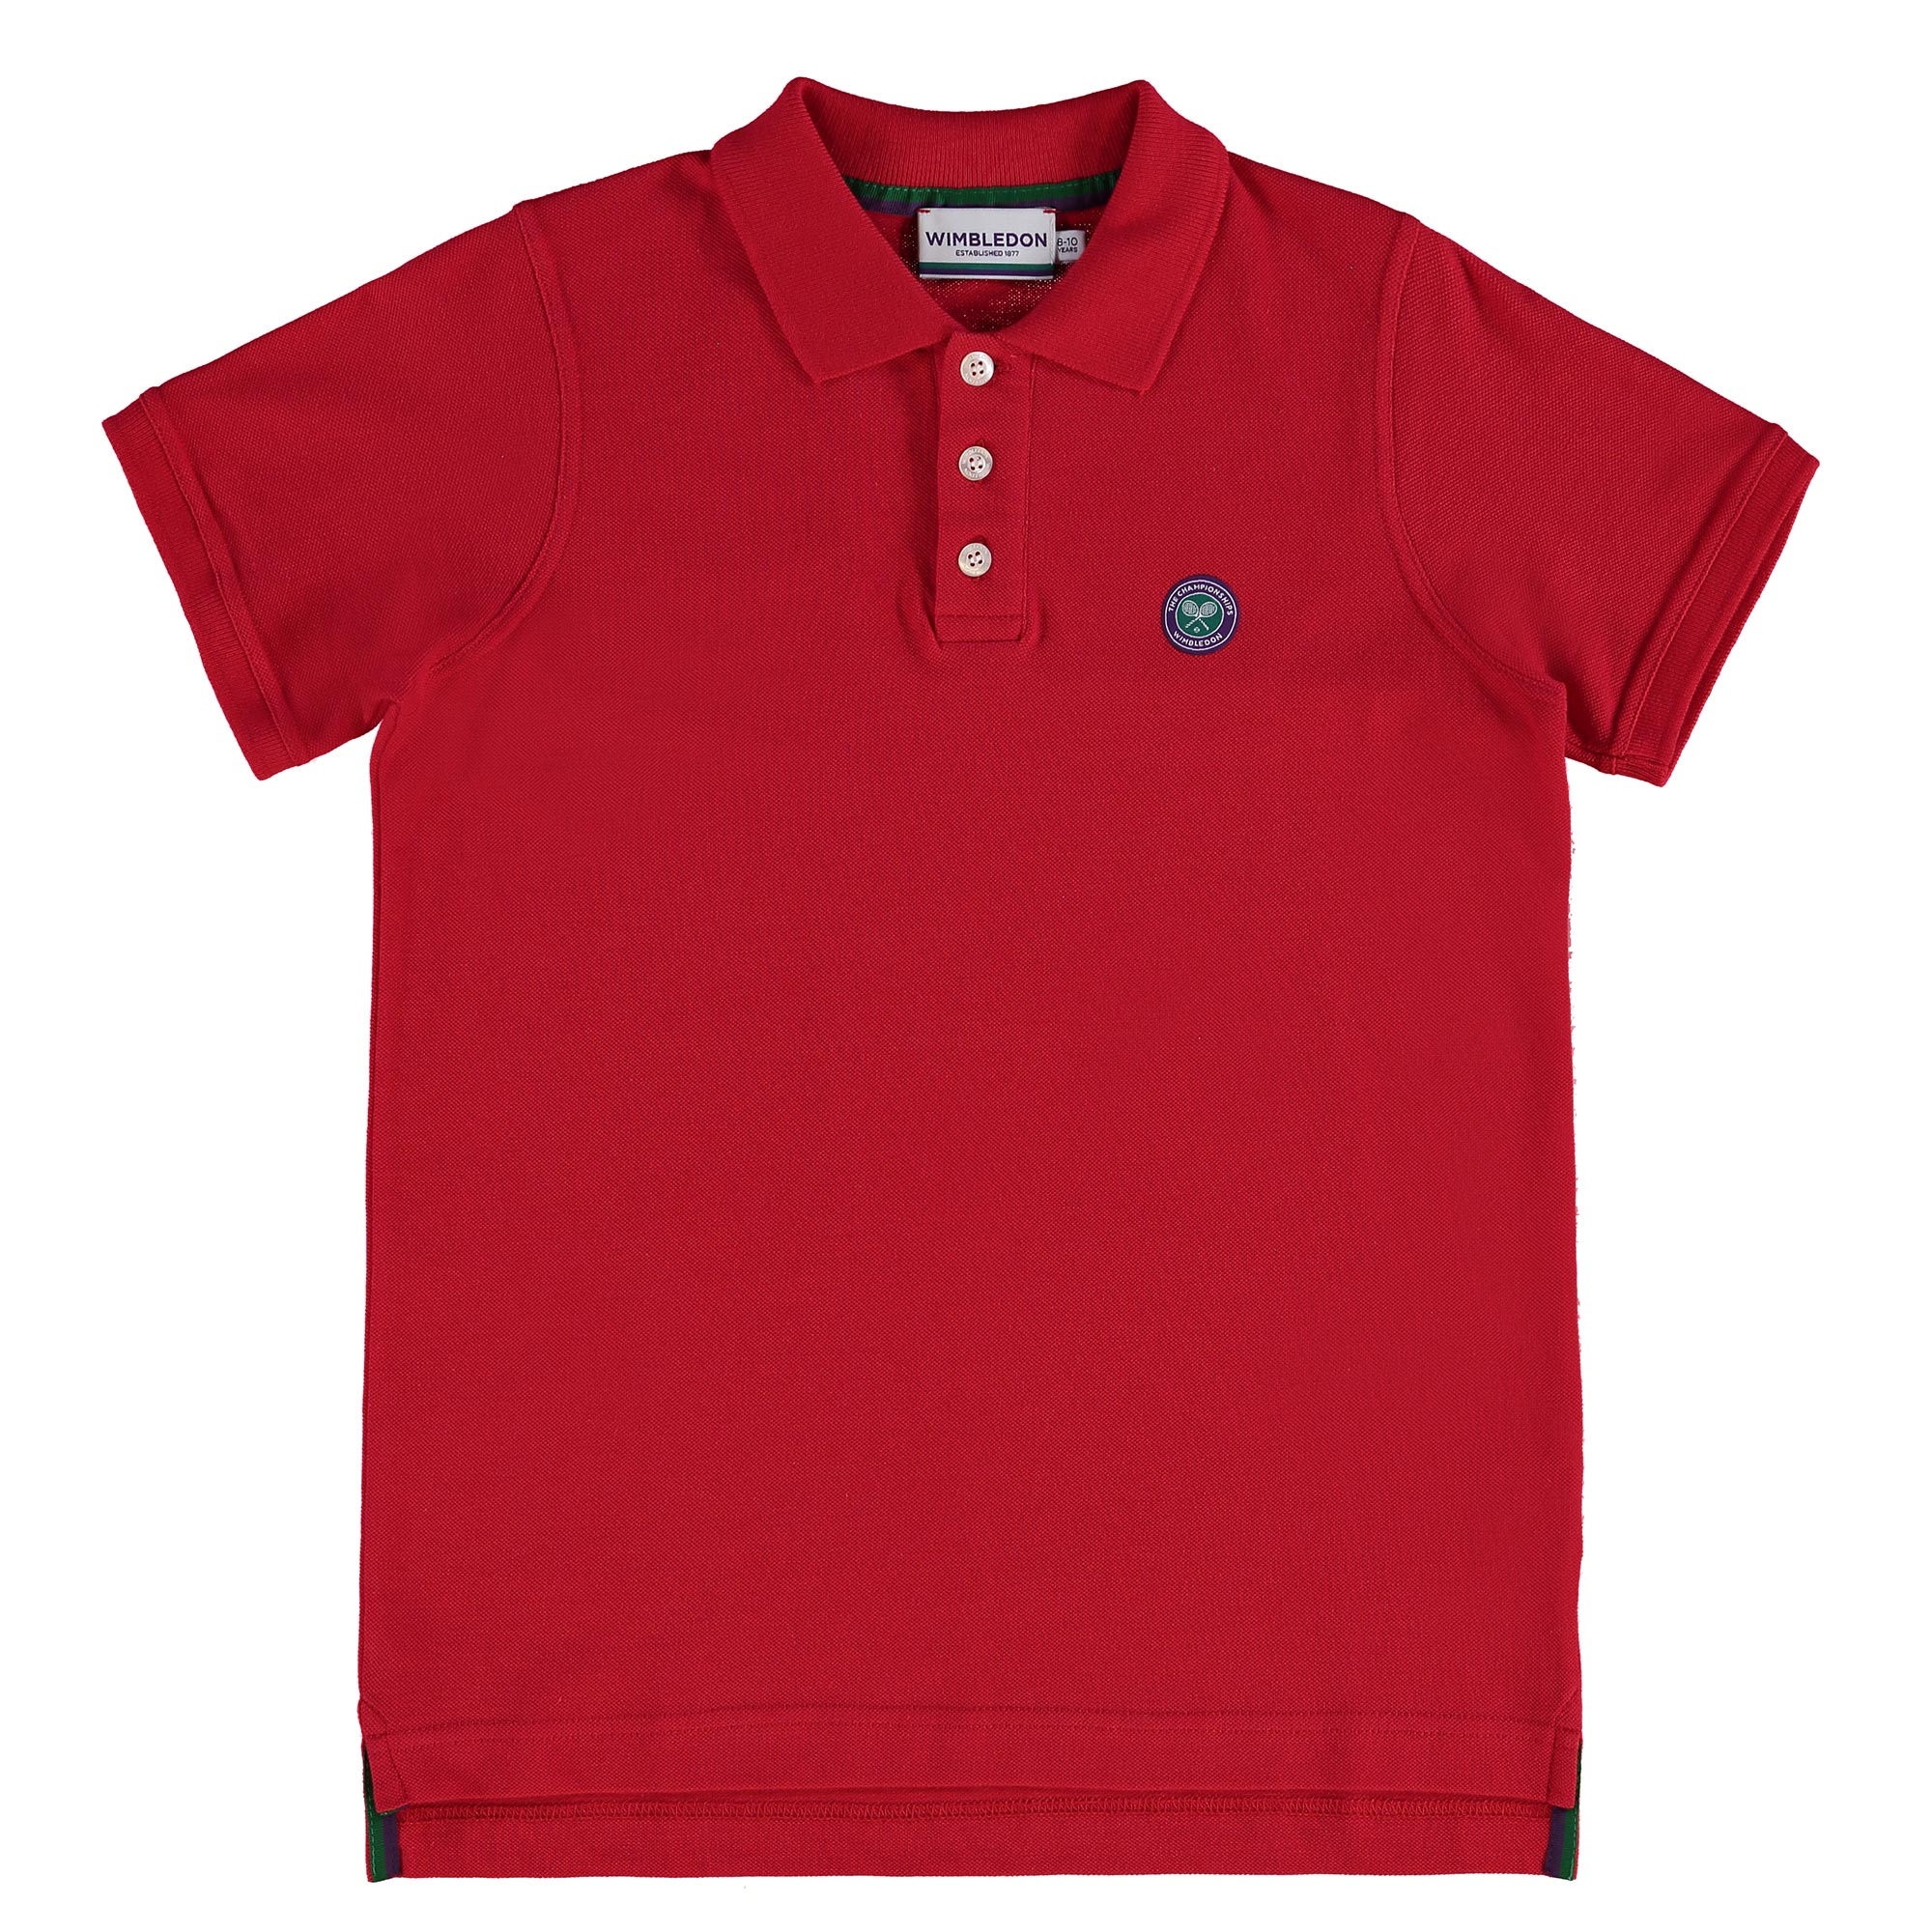 Wimbledon Classic Pique Polo - Mars Red - Junior